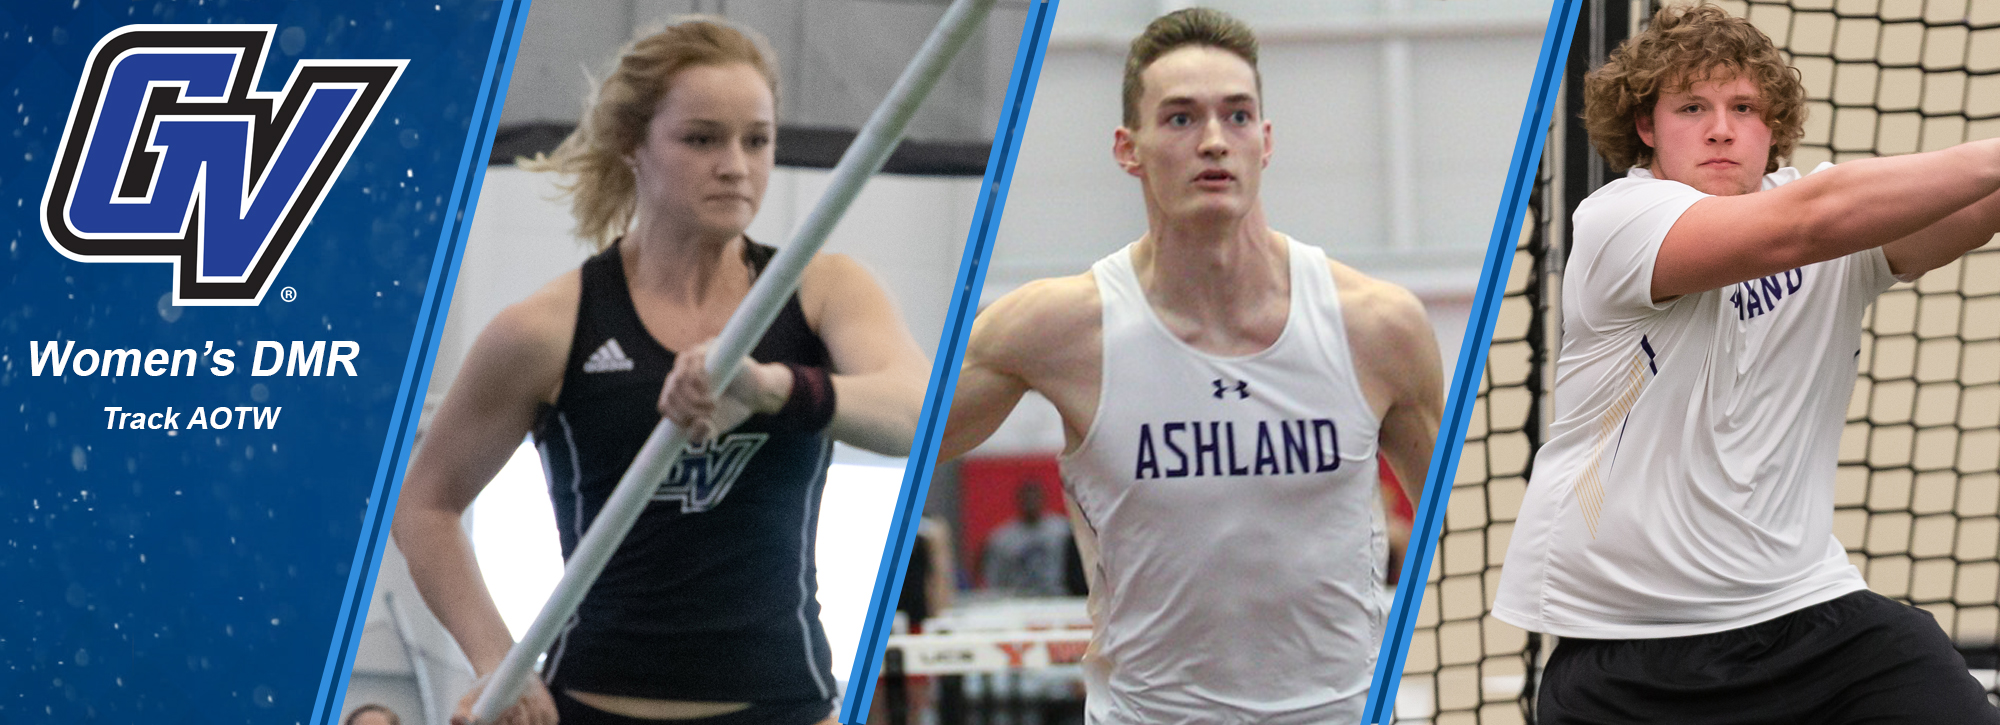 GVSU's Kimes and women's DMR, and Ashland Bassitt and Fairbanks claim Week 7 track and field honors